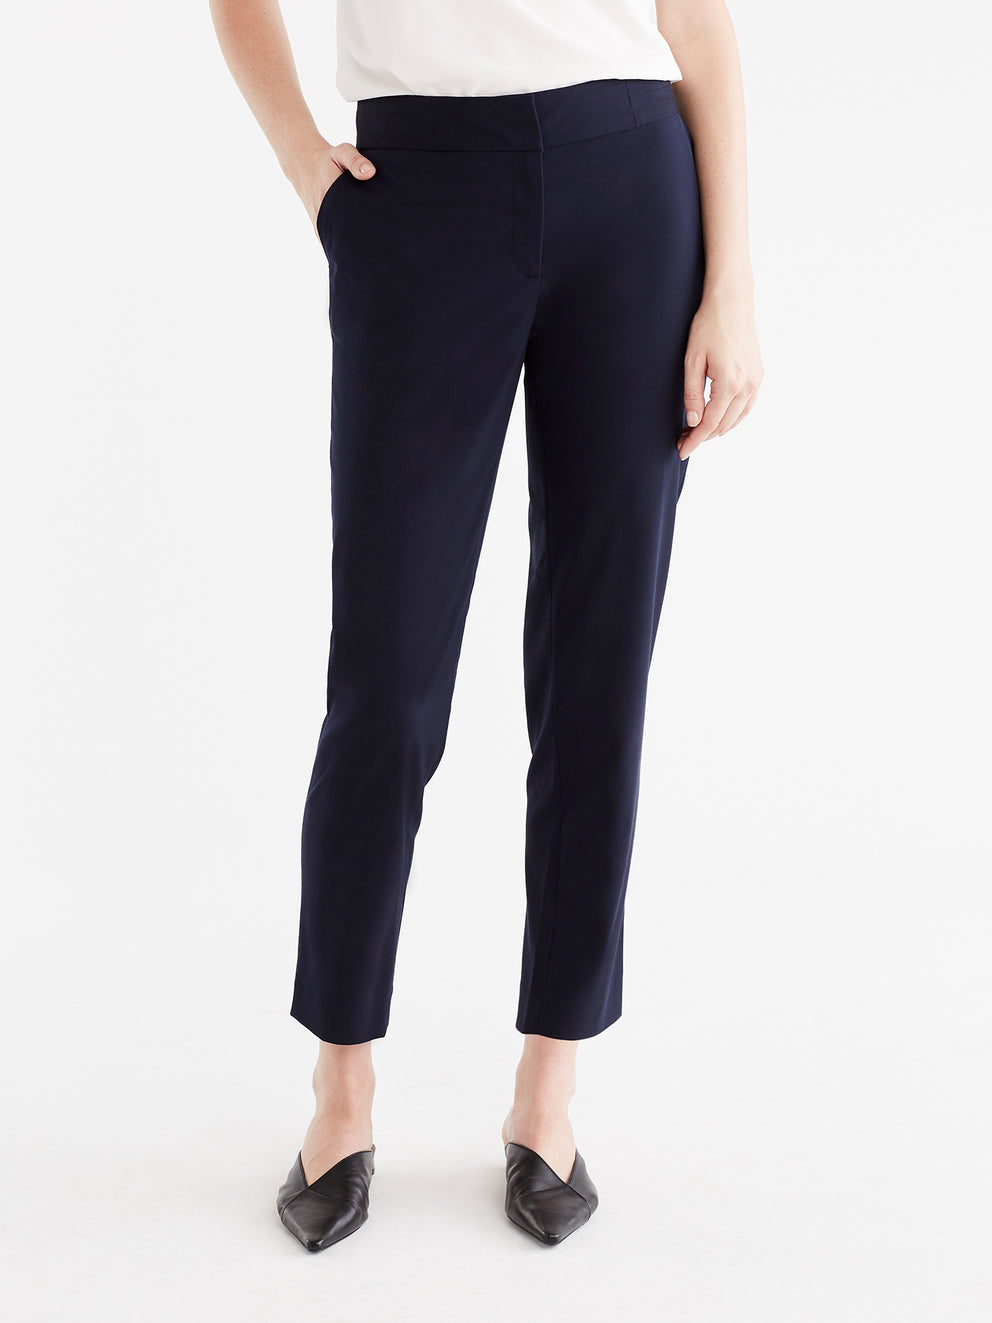 The Jones New York Washable Grace Ankle Pant in color Navy - Image Position 1